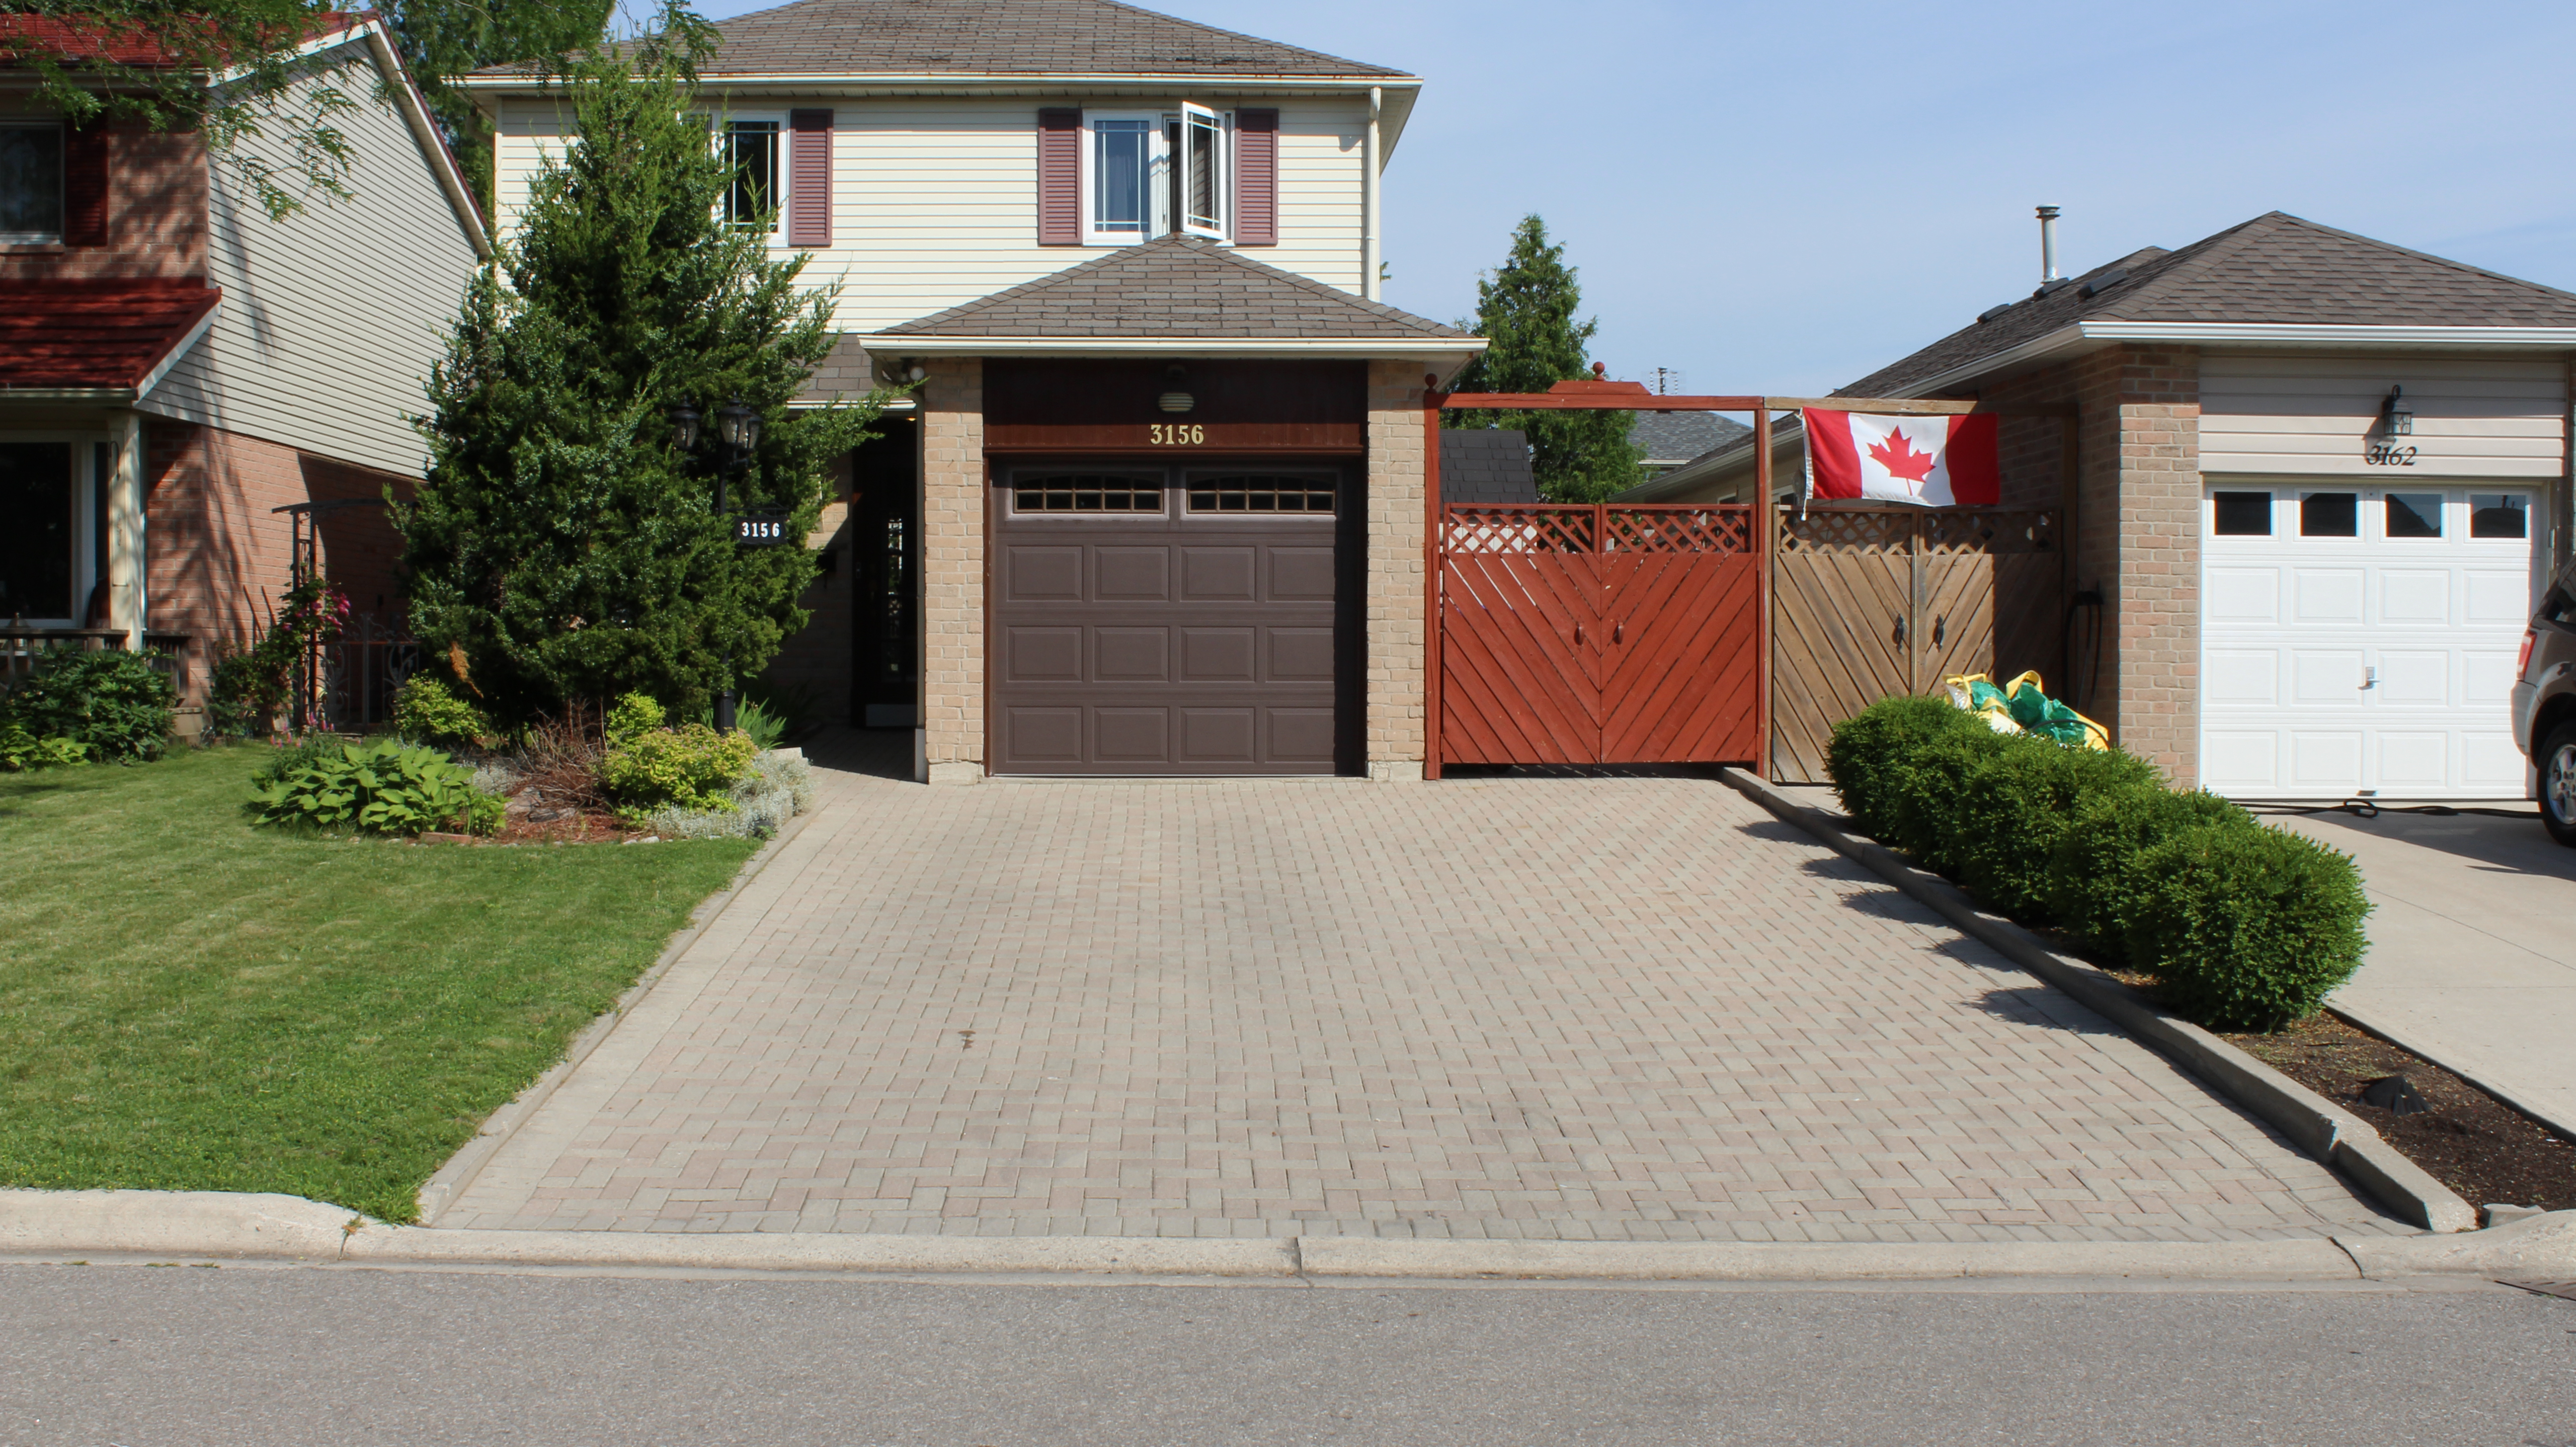 meadowvale home for sale - details here